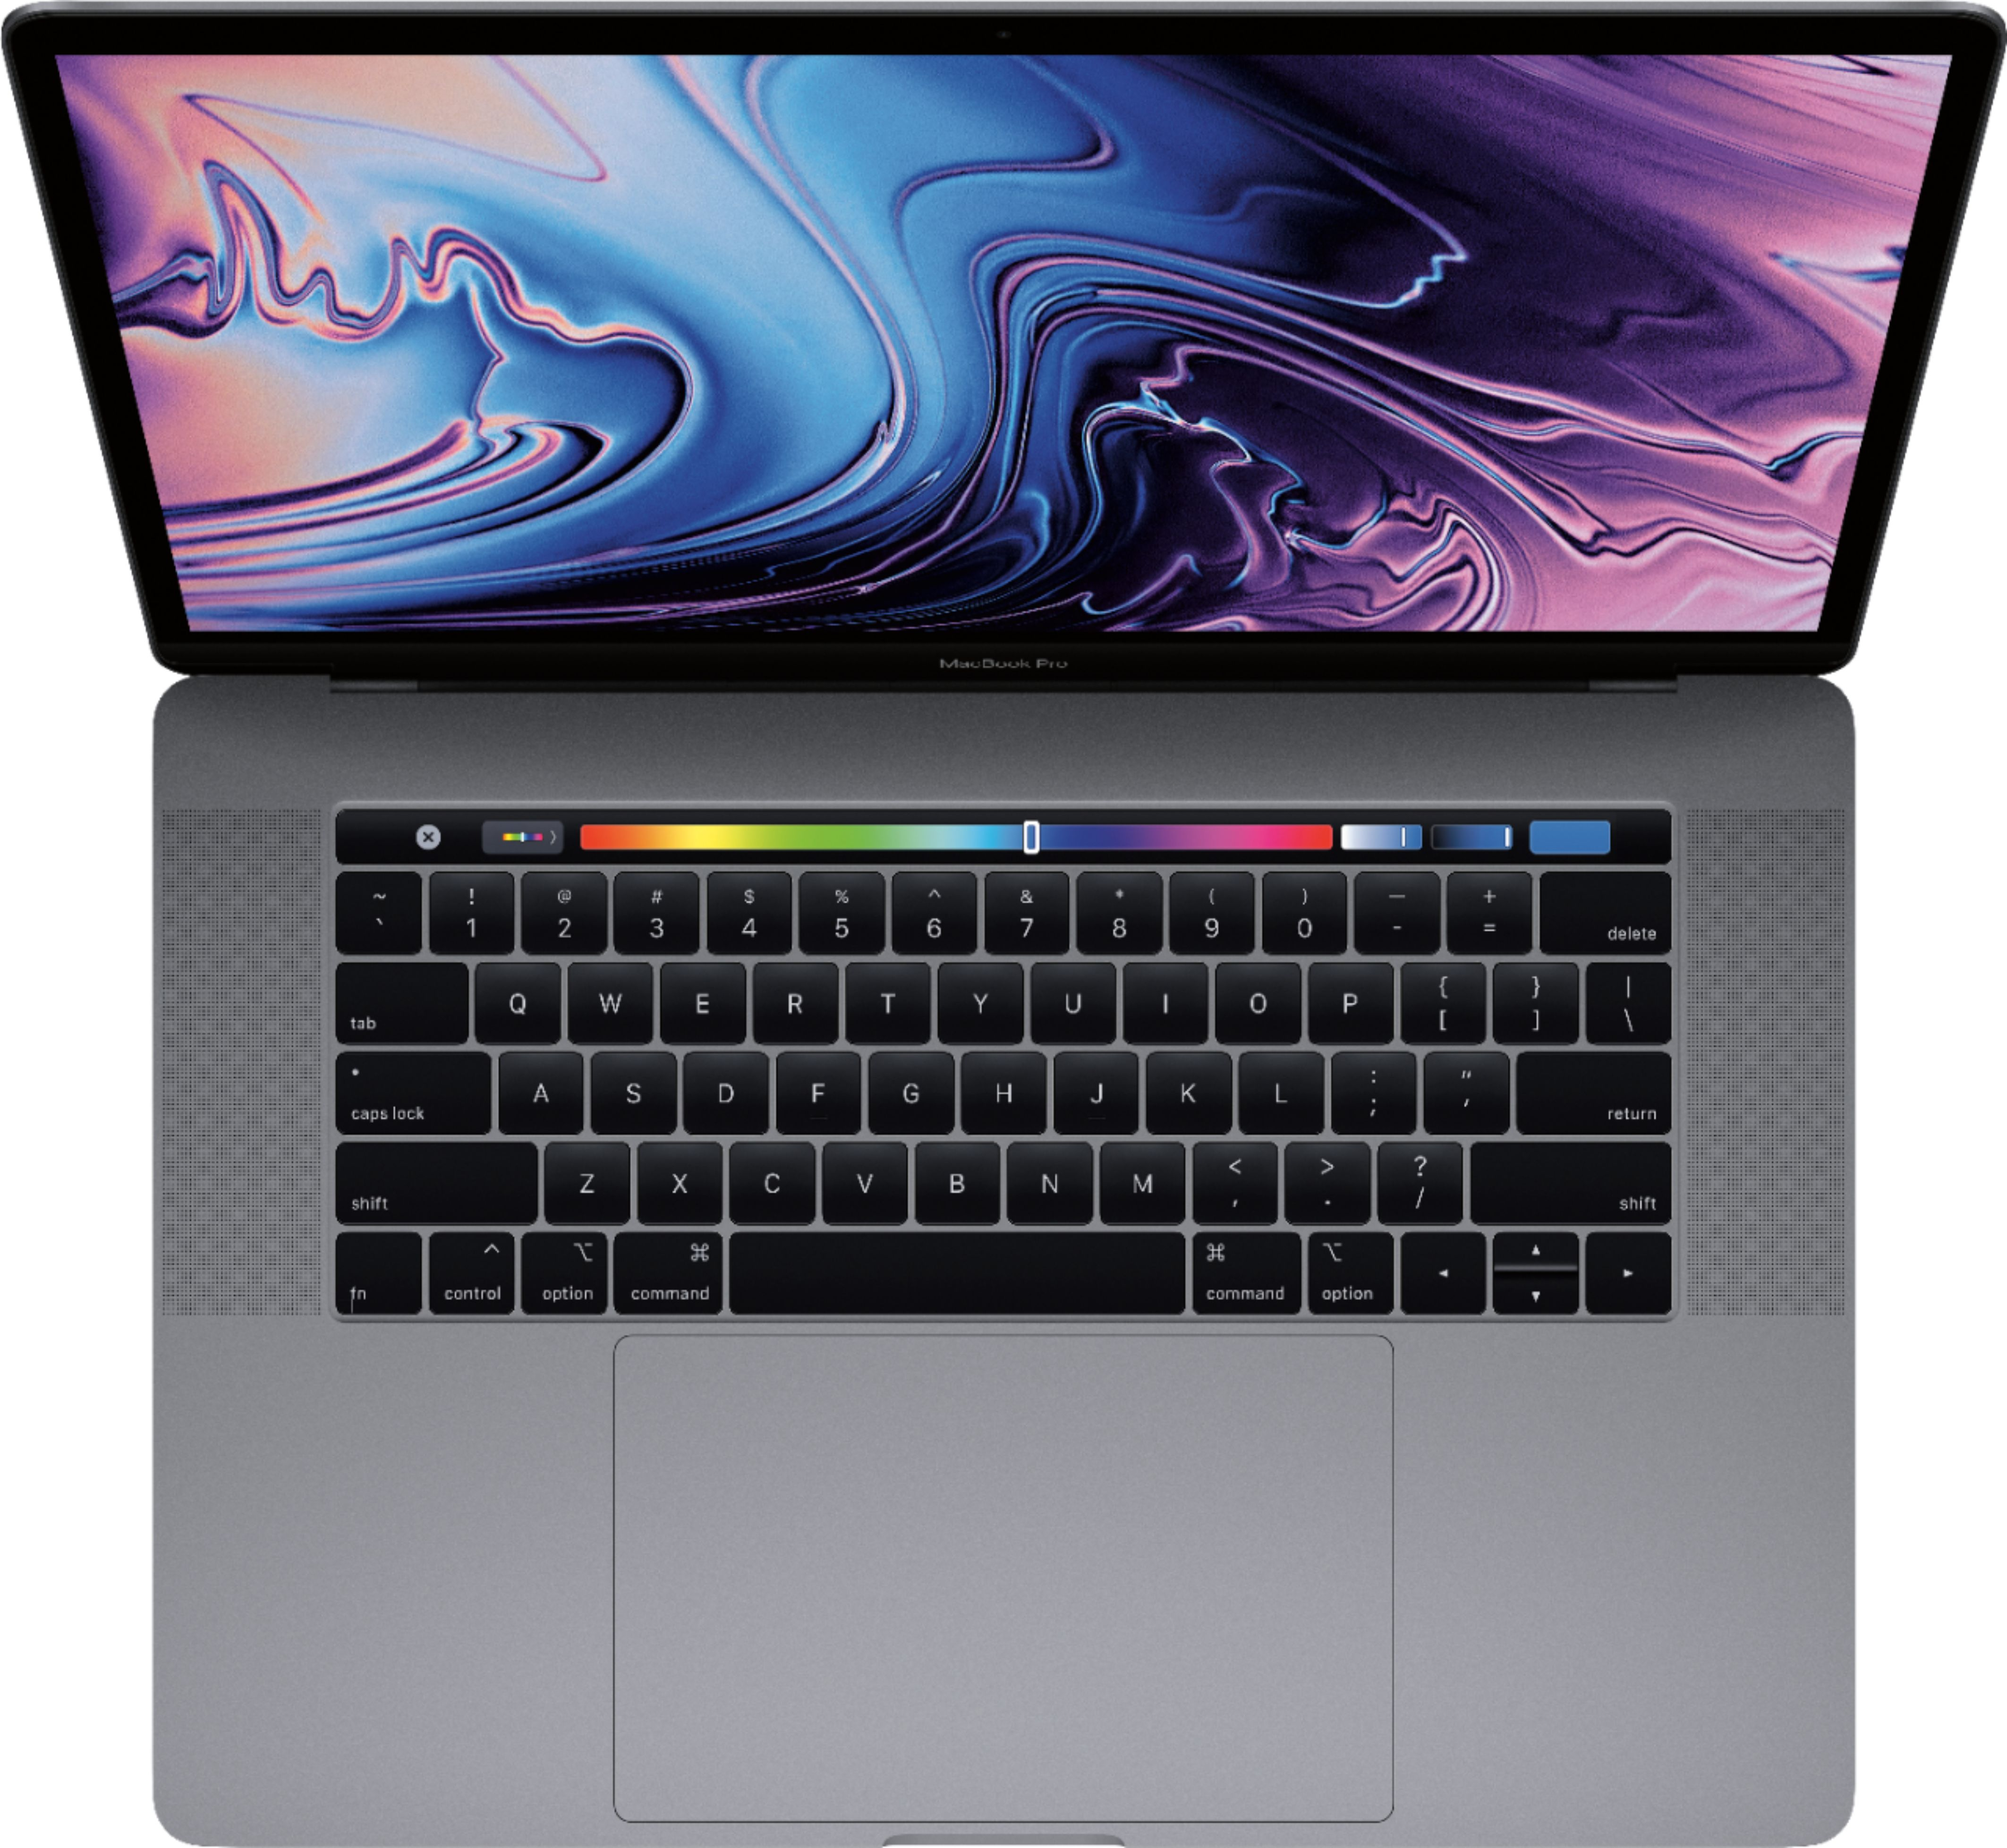 "Alt View Zoom 12. Apple - MacBook Pro 15.4"" Display with Touch Bar - Intel Core i9 - 32GB Memory - AMD Radeon Pro Vega 20 - 1TB SSD - Space Gray."